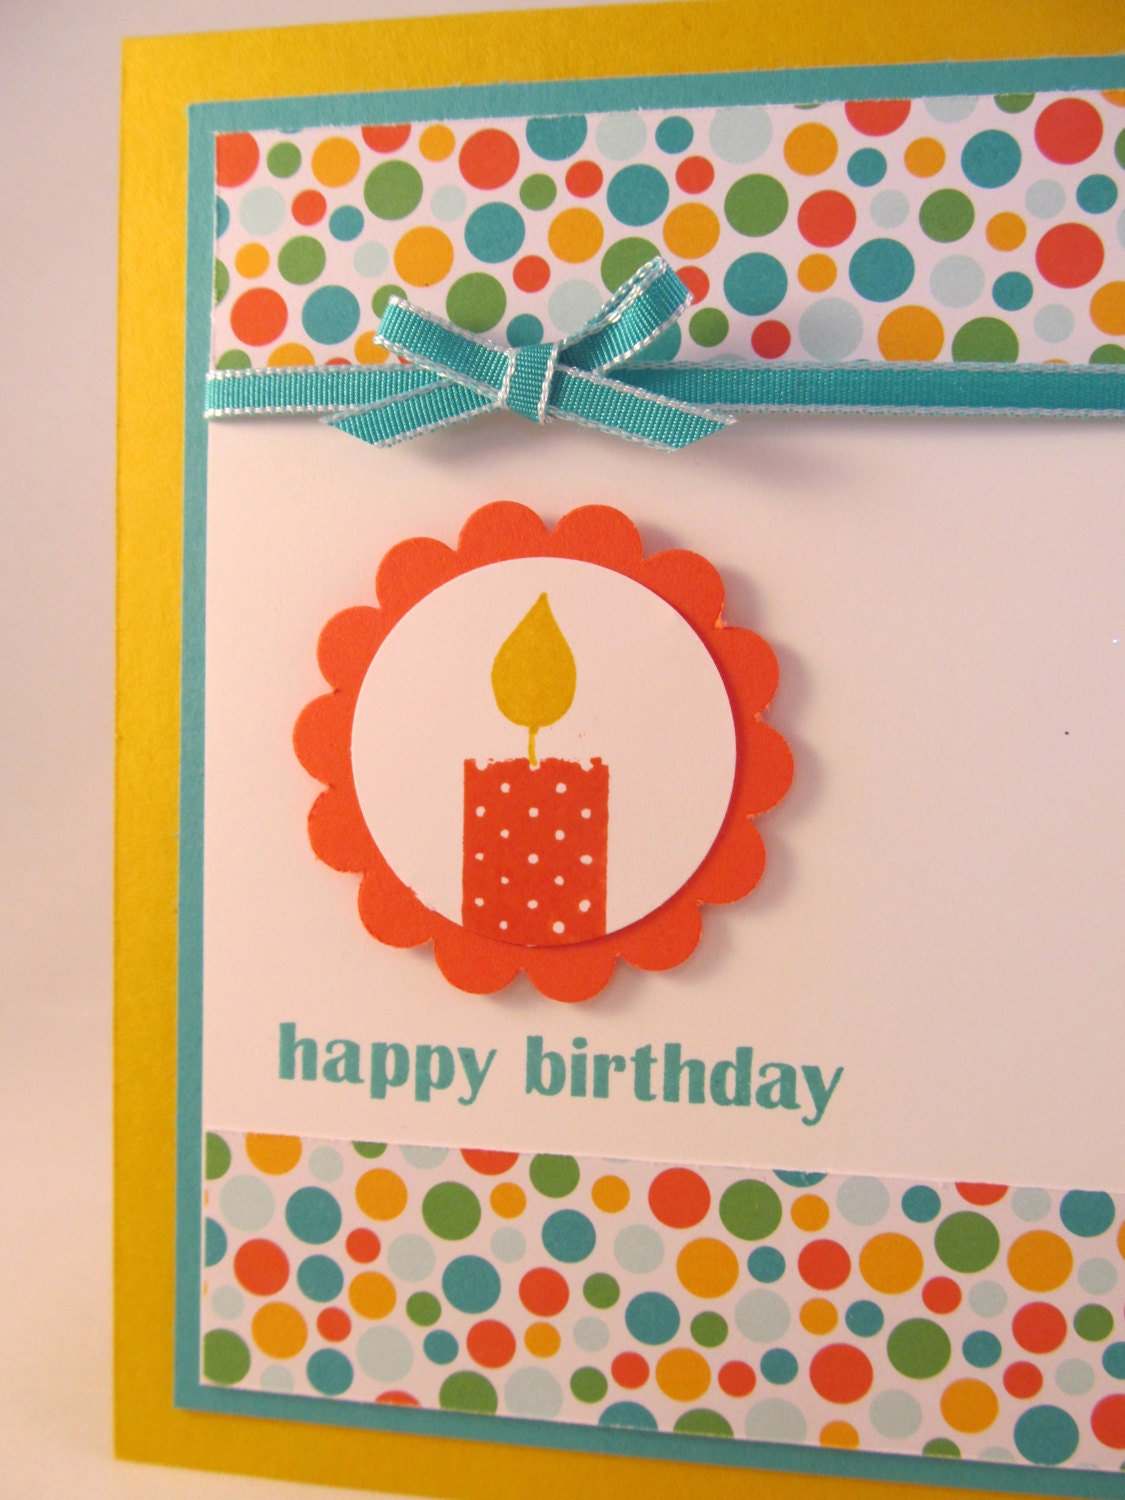 Candle Birthday Wishes Hand Stamped Happy Birthday Greetings Card